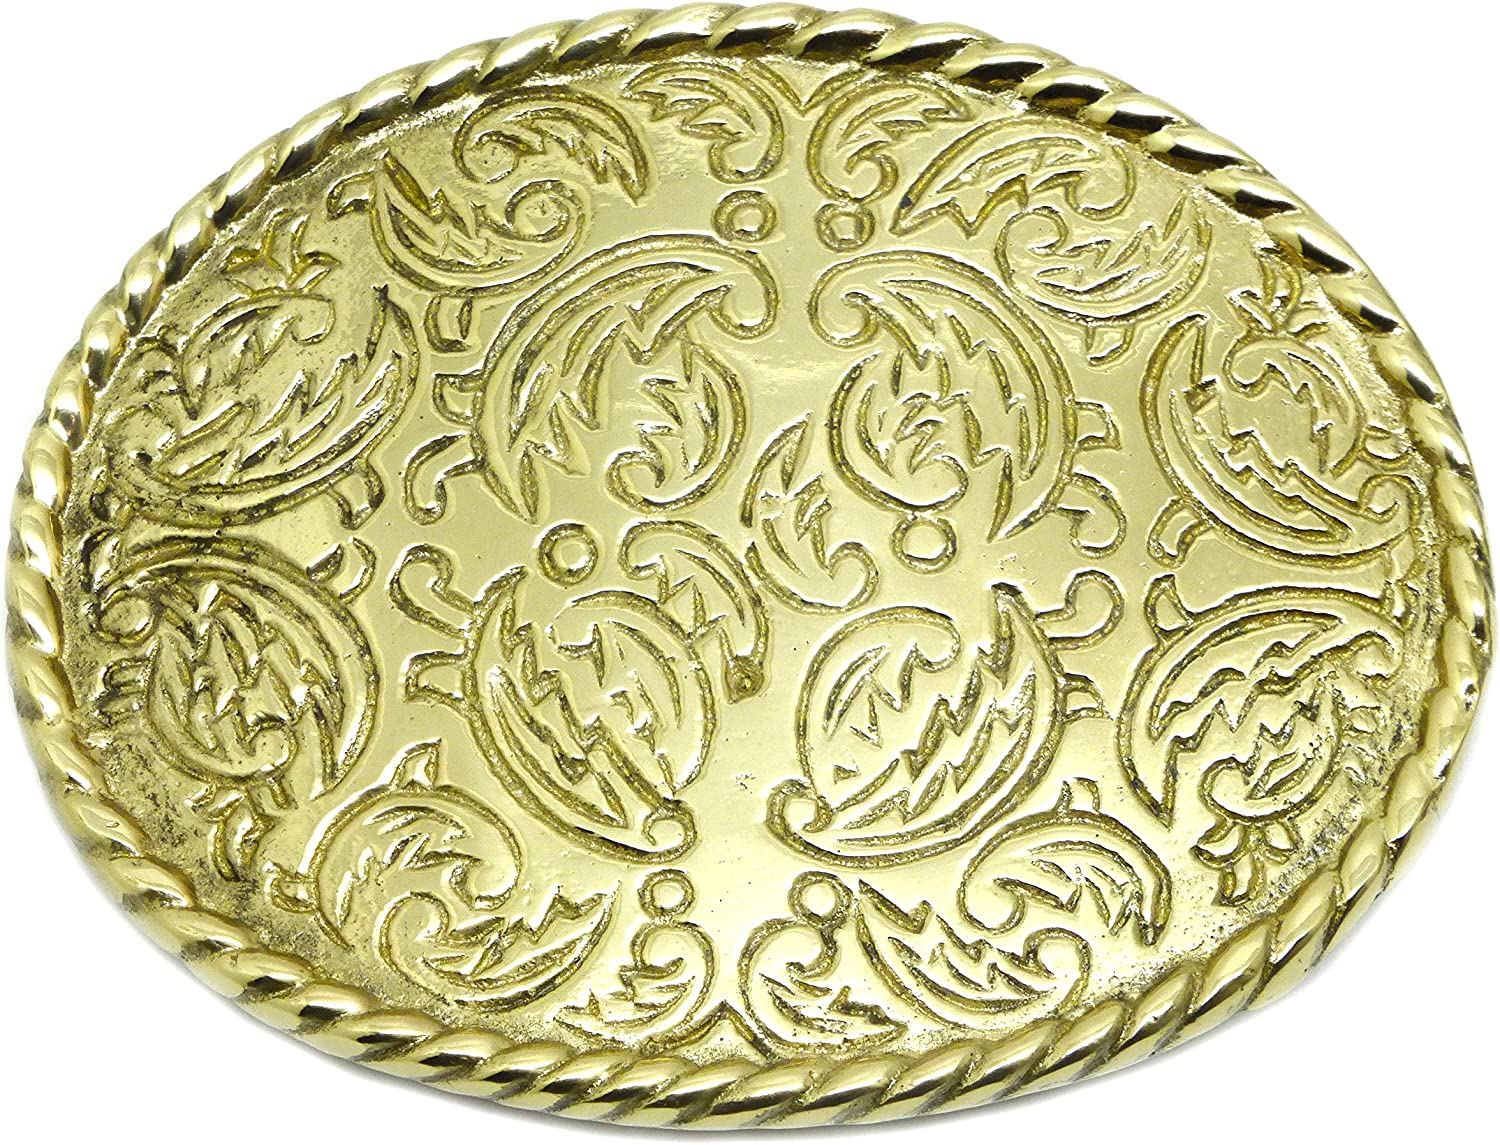 Rodeo Oval Belt Buckle American Western Style Solid Brass Authentic Baron Buckles